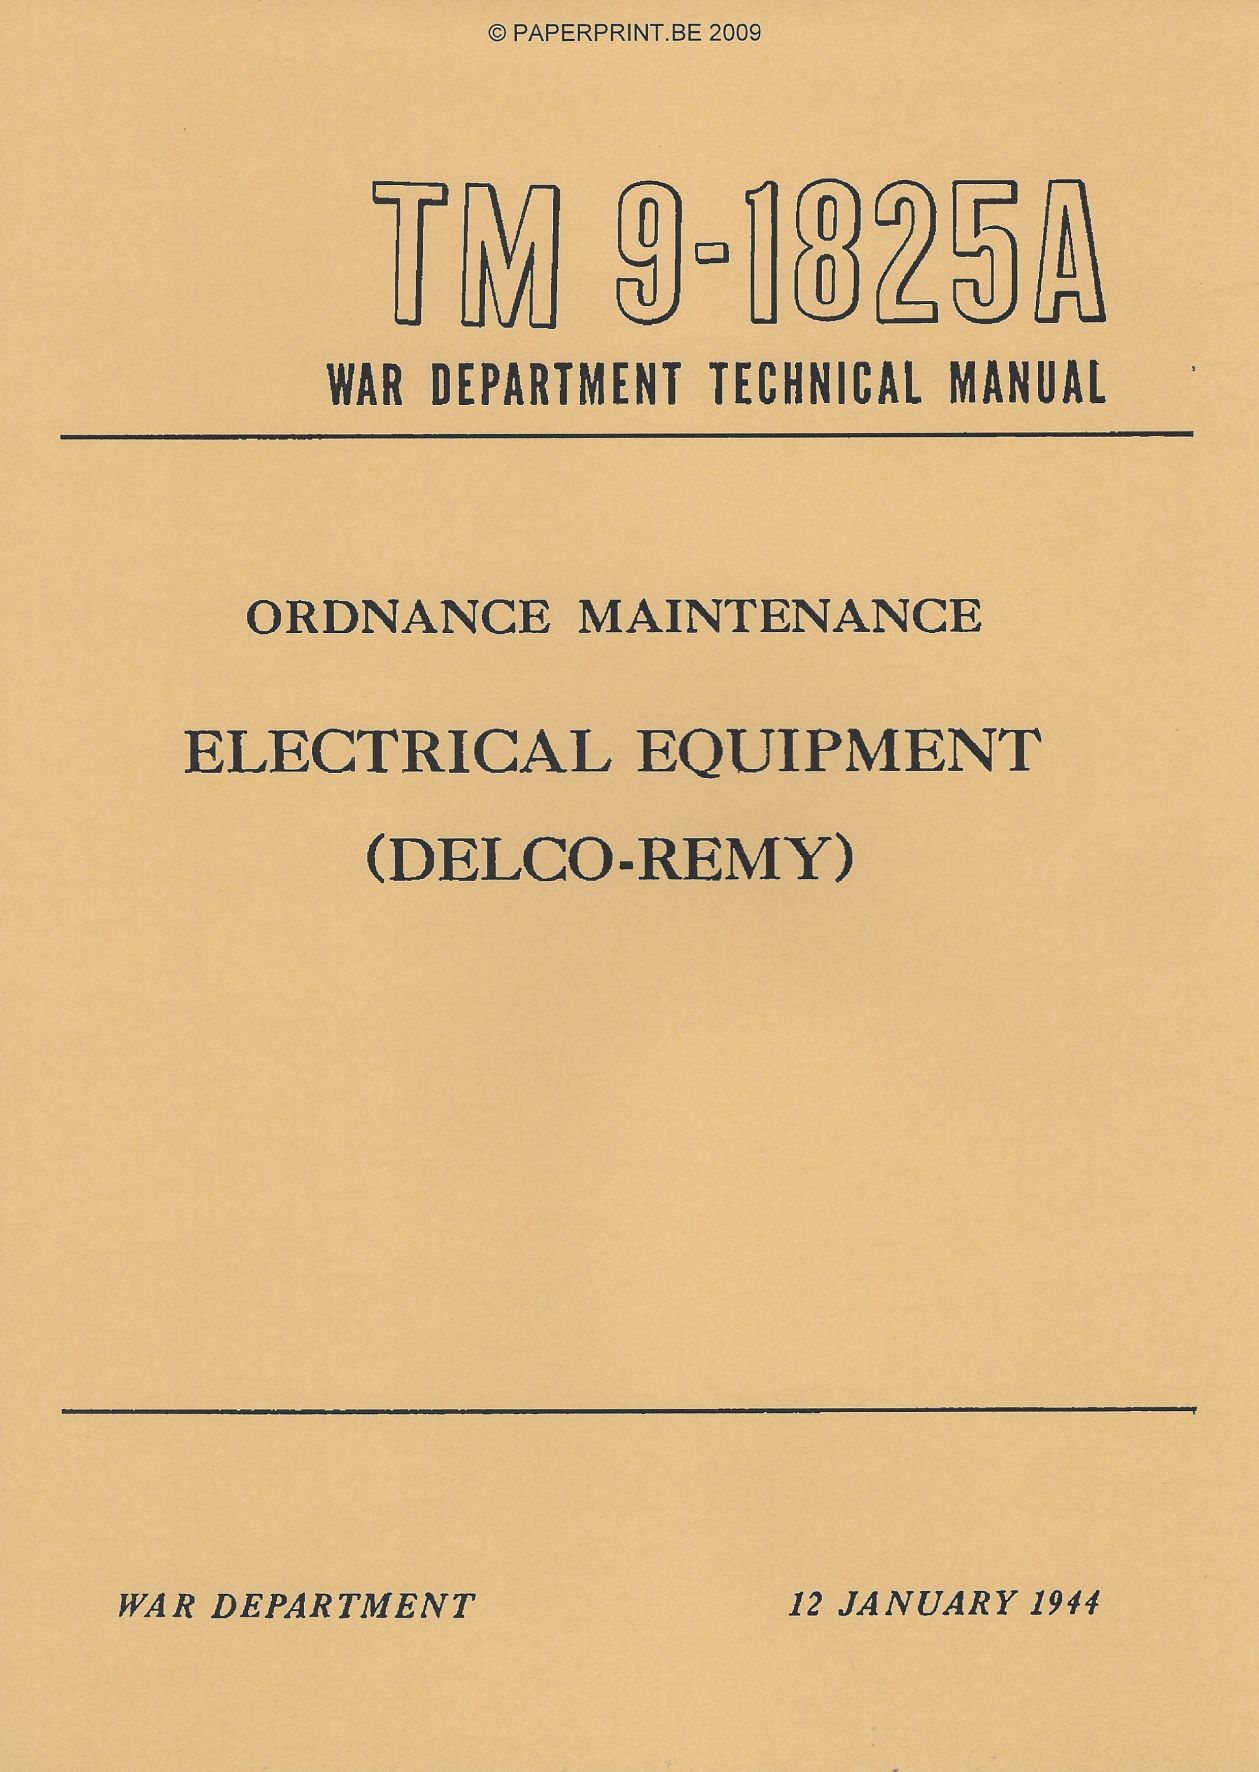 TM 9-1825A US ELECTRICAL EQUIPMENT (DELCO-REMY)